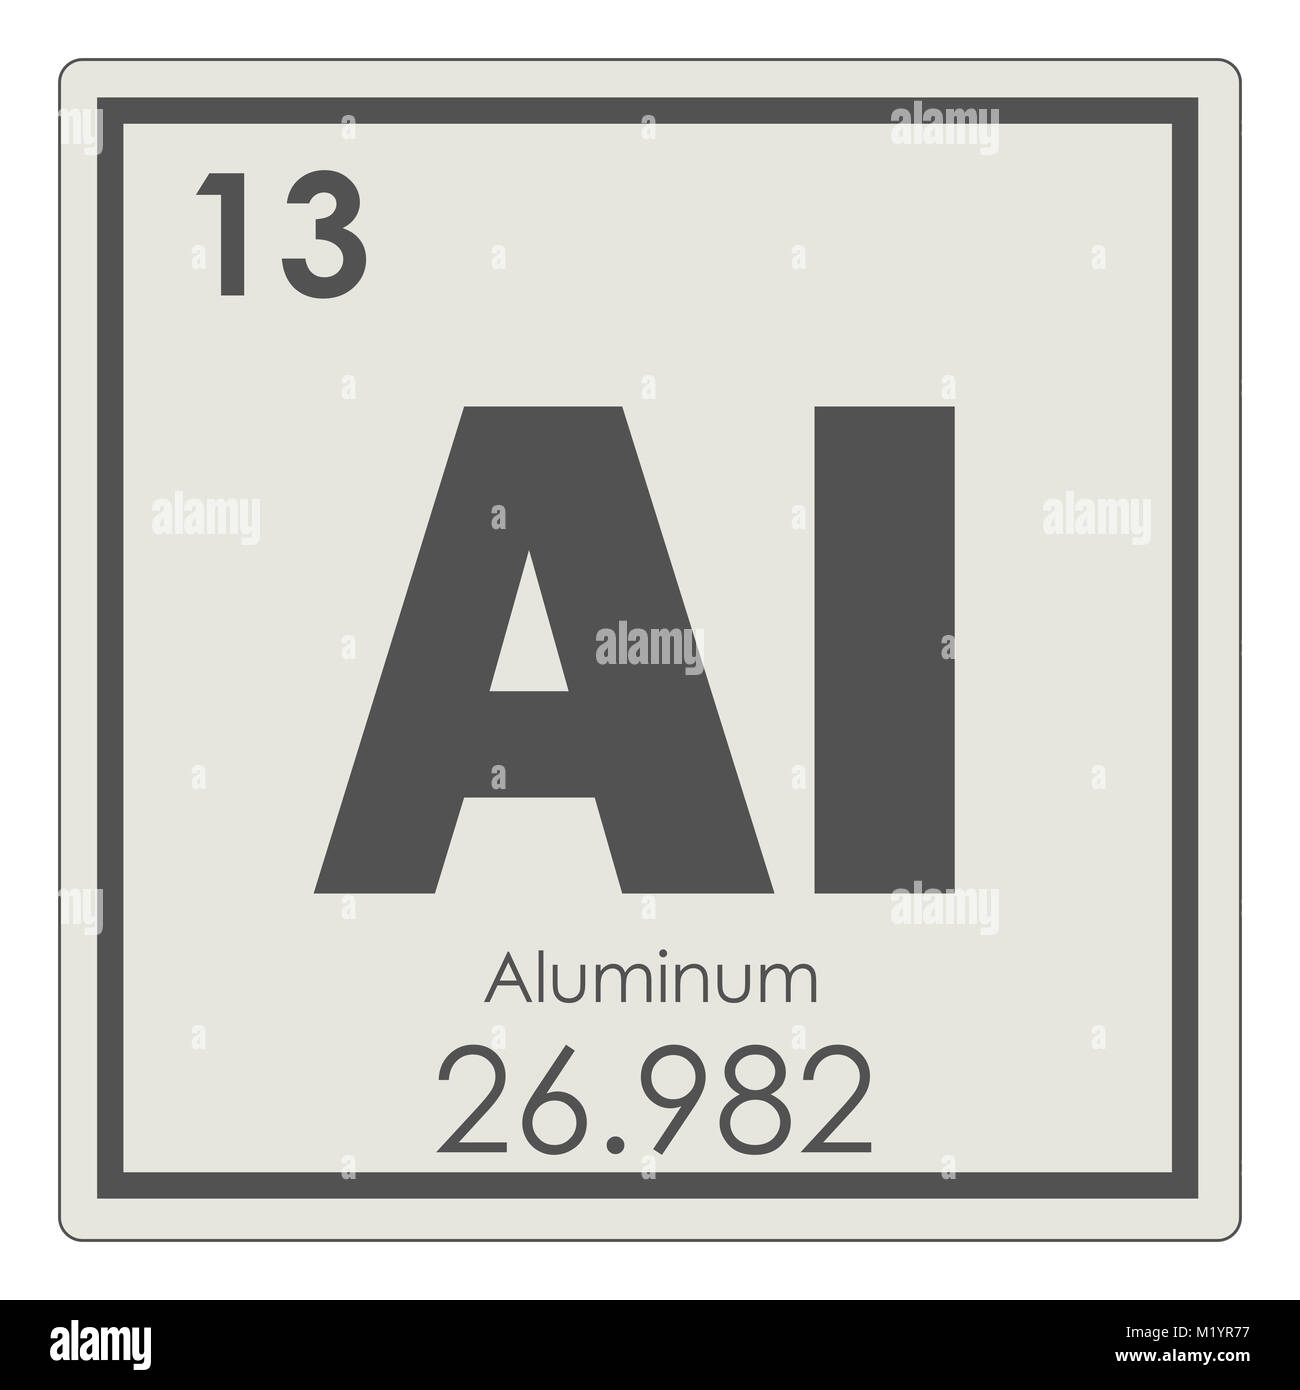 Aluminum chemical element periodic table science symbol stock photo aluminum chemical element periodic table science symbol urtaz Gallery